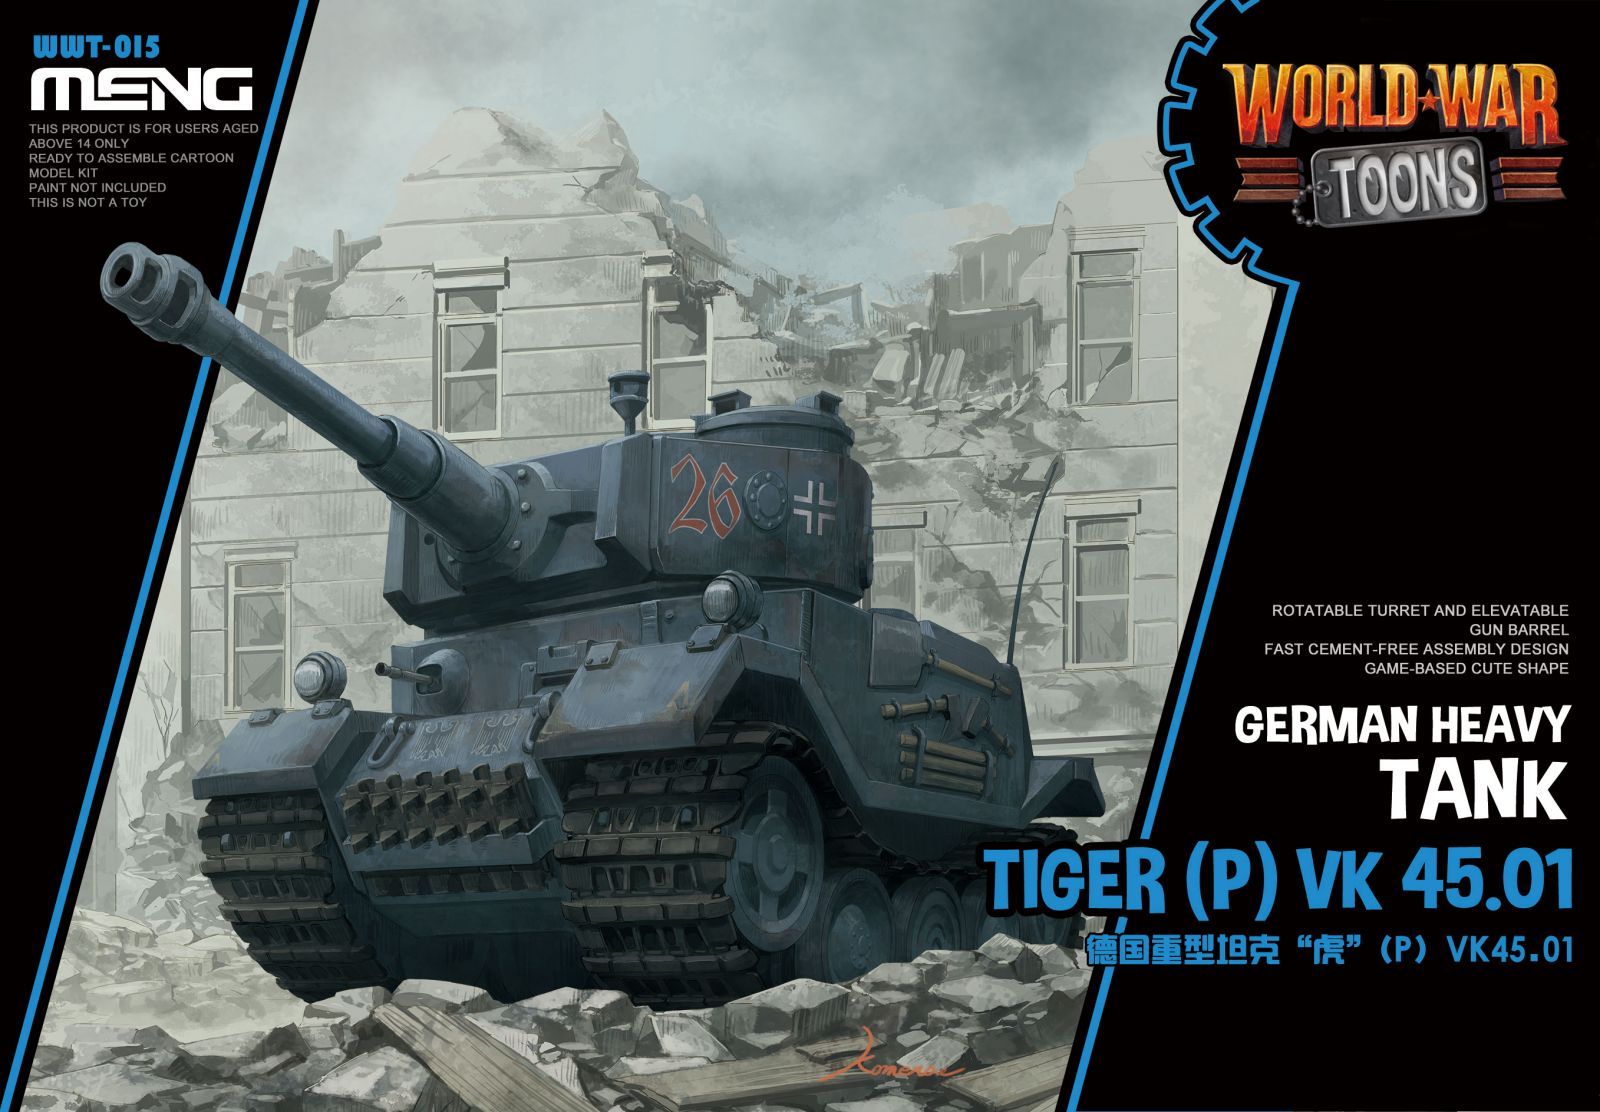 The Modelling News: Preview: Meng's new World War toon tank